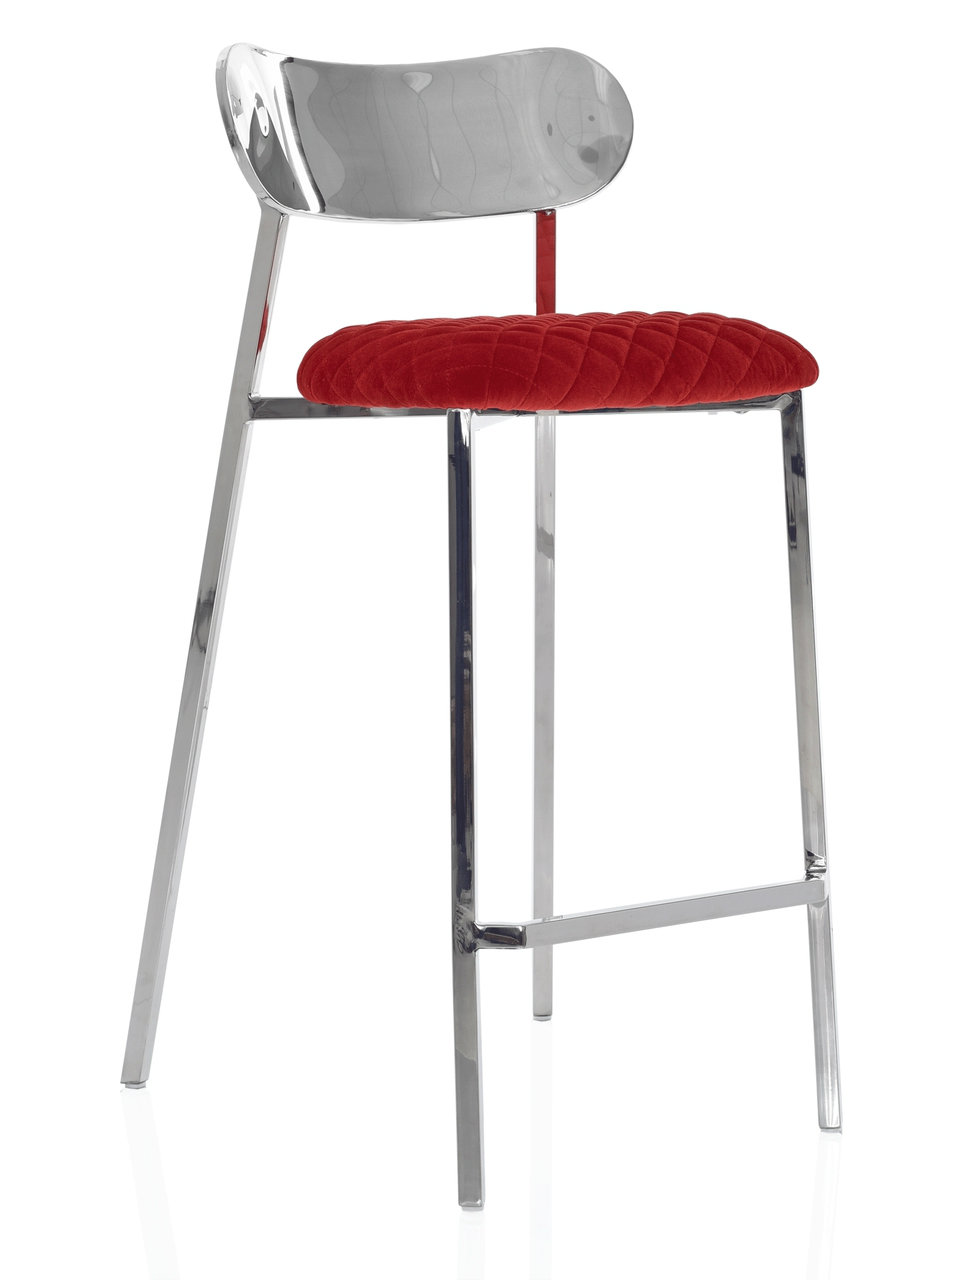 stool under chair desk design within reach modern bar stools and counter cantoni panay